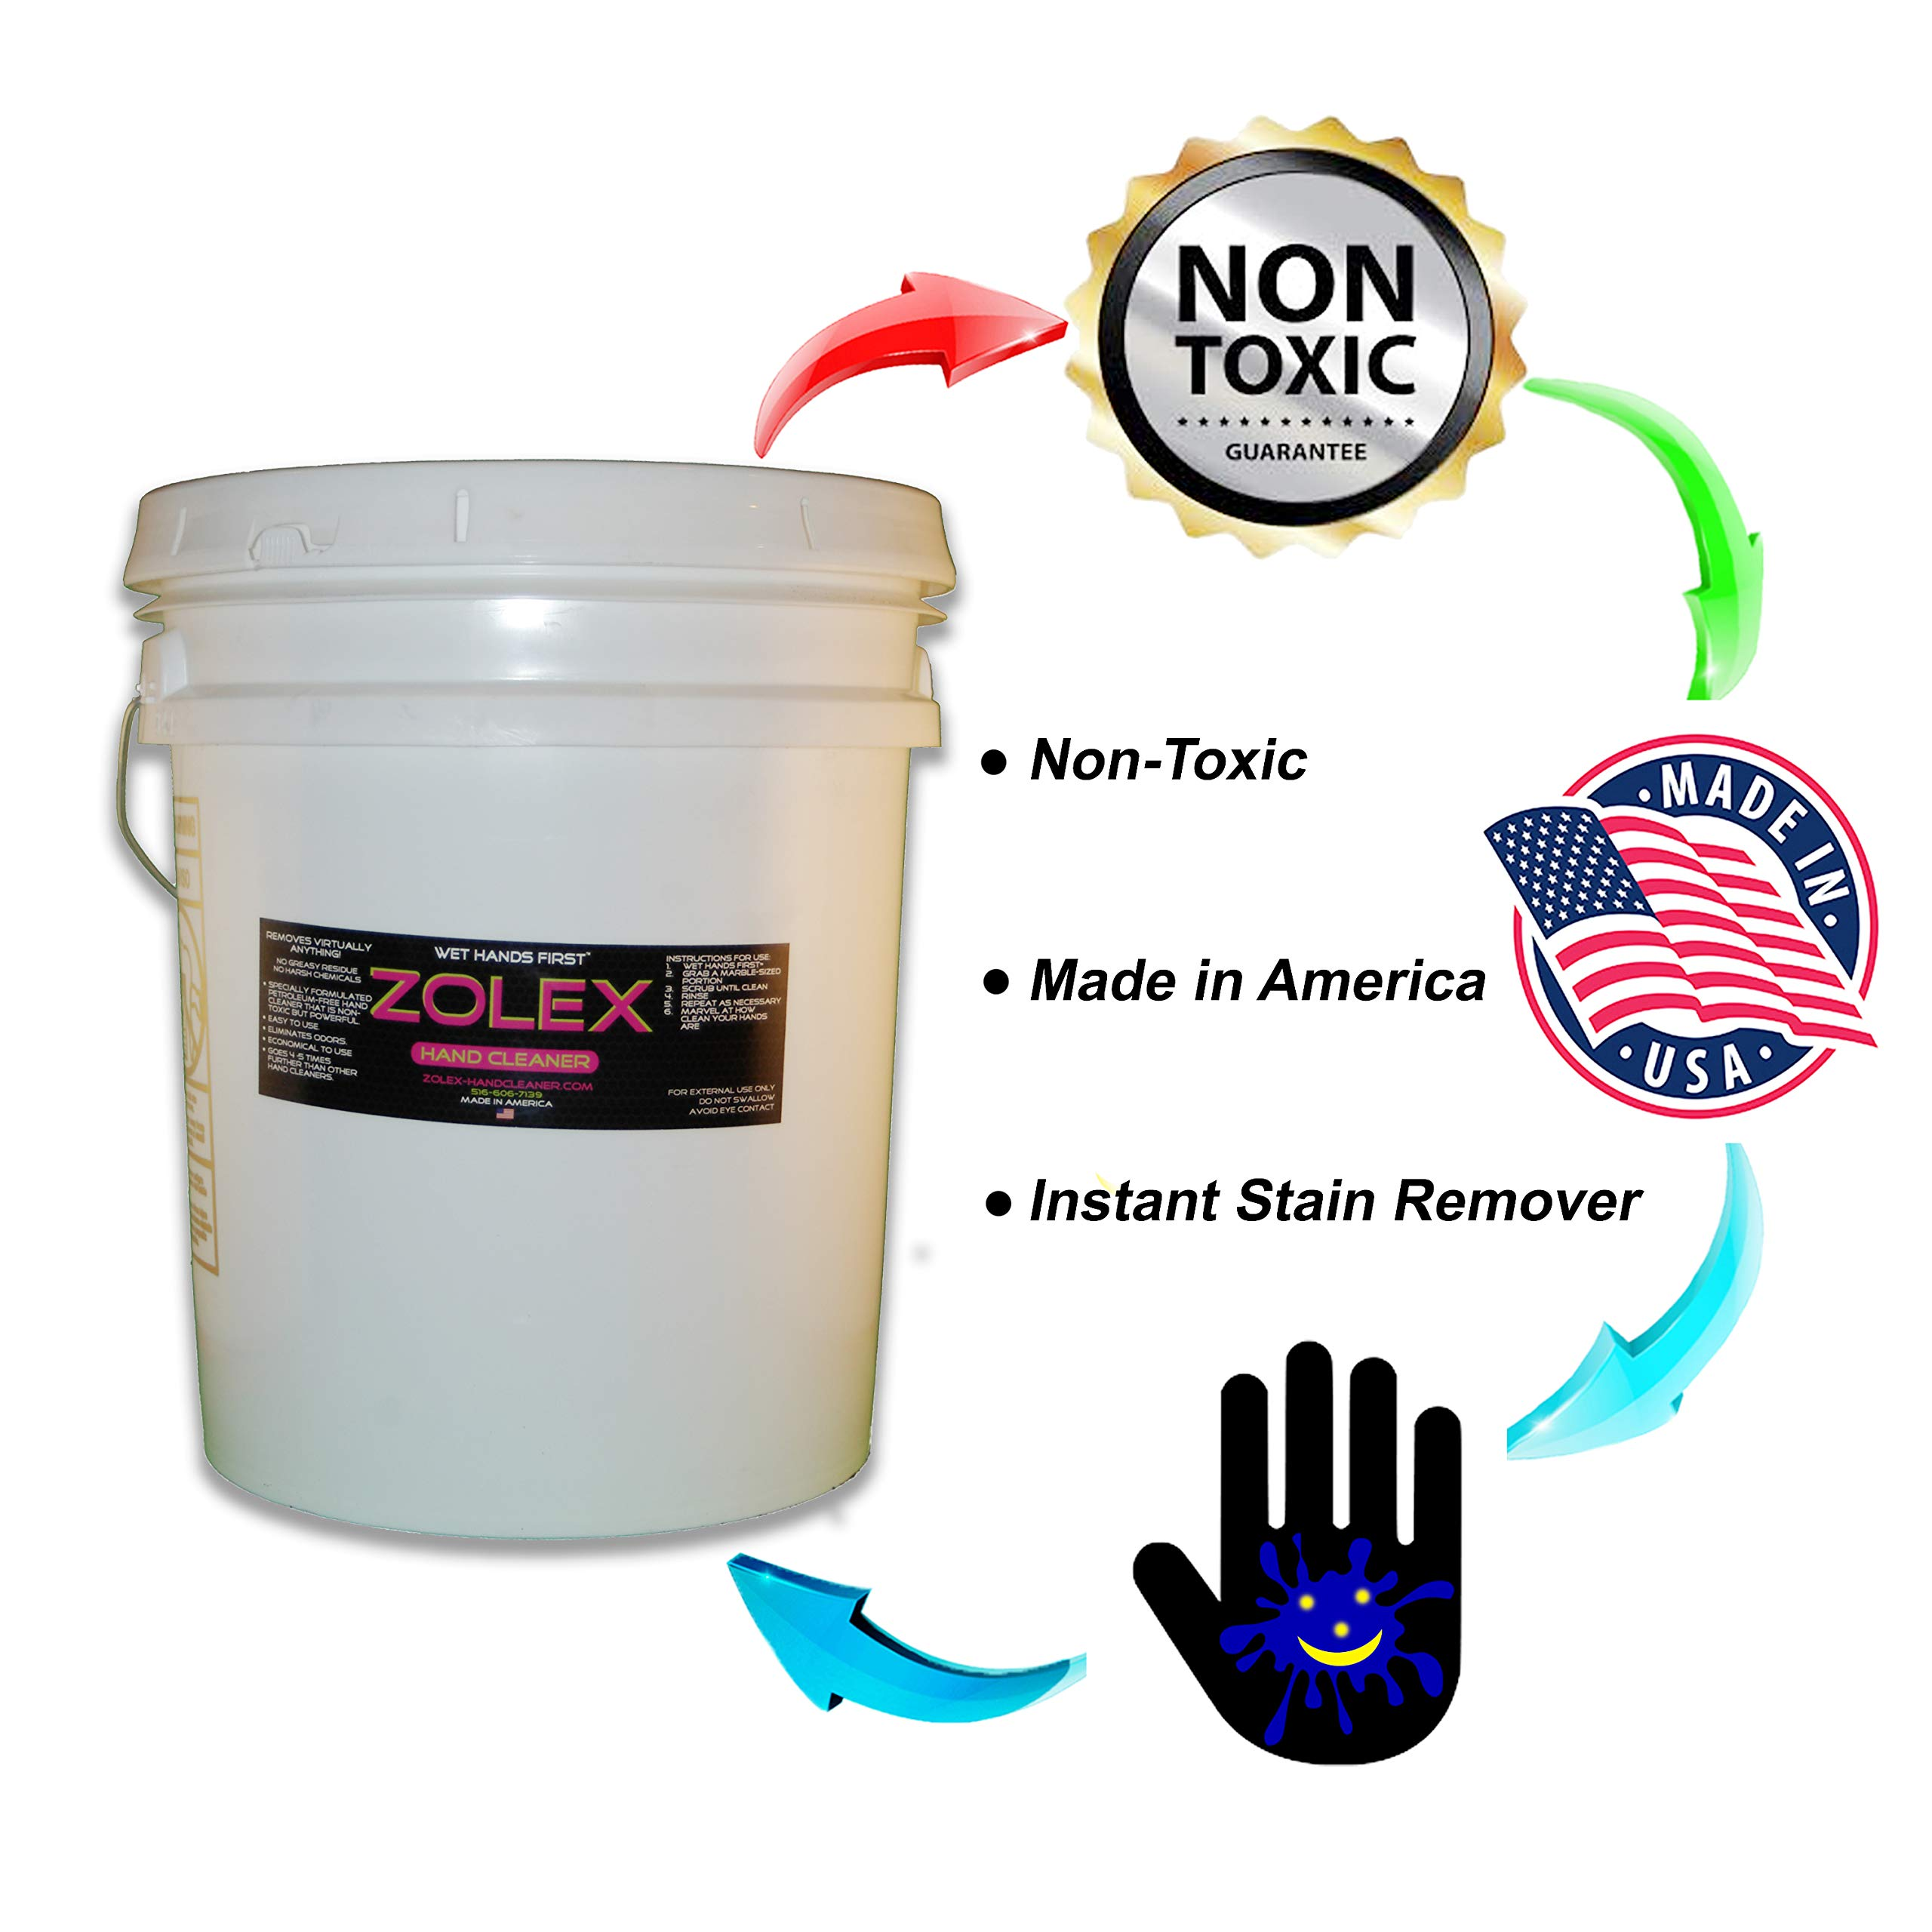 Zolex Water Activated Hand Cleaner for Working Hands| Stain Remover for Heavy Duty Workers | Grease Remover for Auto Mechanics - Non-Toxic Petroleum Free | Commercial-Sized Pail (25 lb) by Zolex (Image #3)